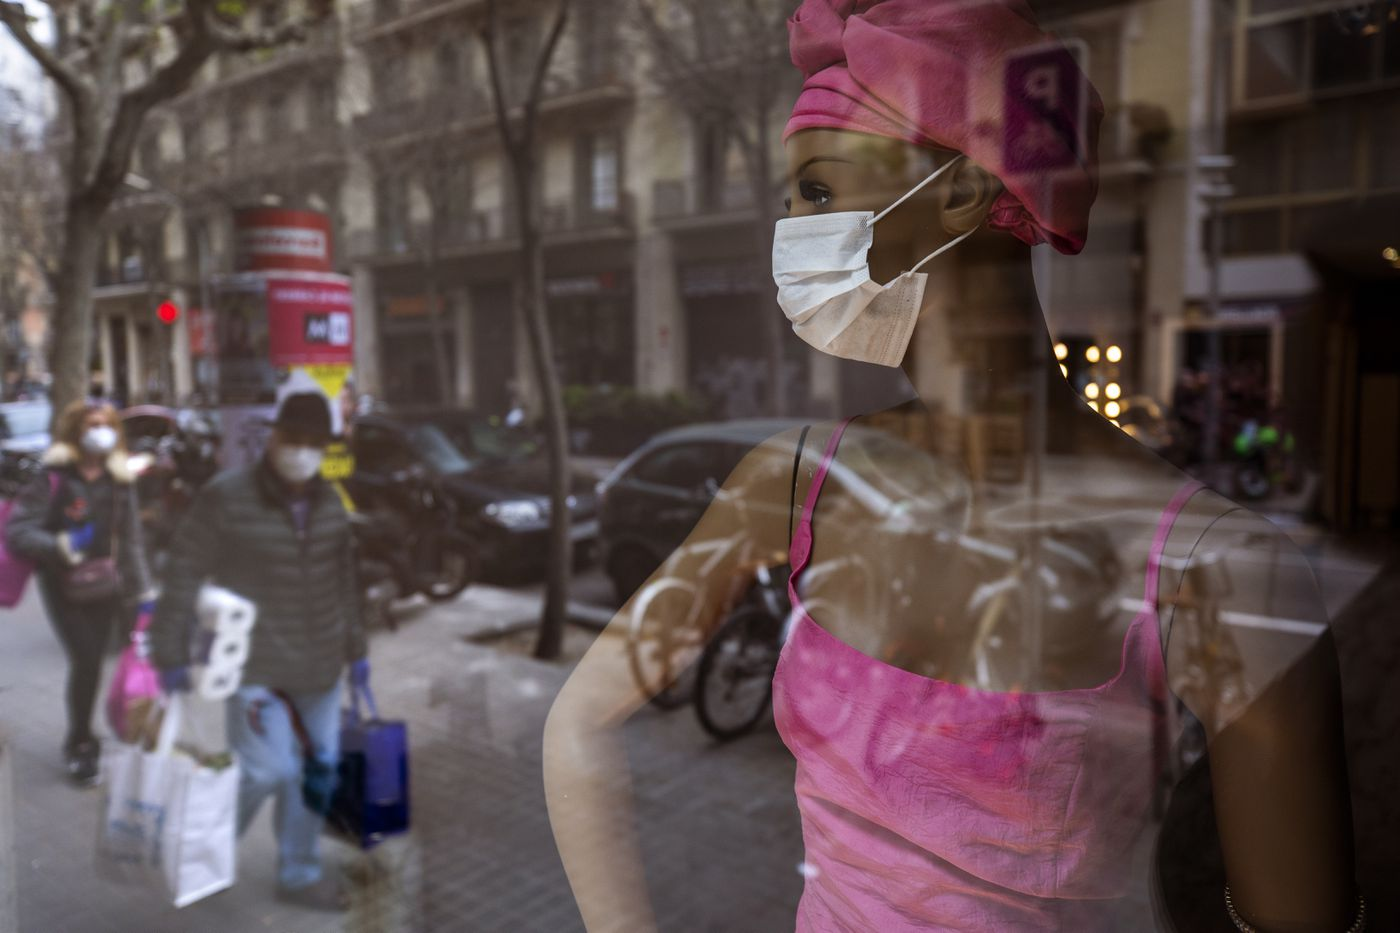 People wearing masks and carrying supplies walk past a mannequin wearing a mask in downtown Barcelona, Spain, Saturday, March 14, 2020. Spain's prime minister has announced a two-week state of emergency from Saturday in a bid to contain the new coronavirus outbreak. (AP Photo/Emilio Morenatti)